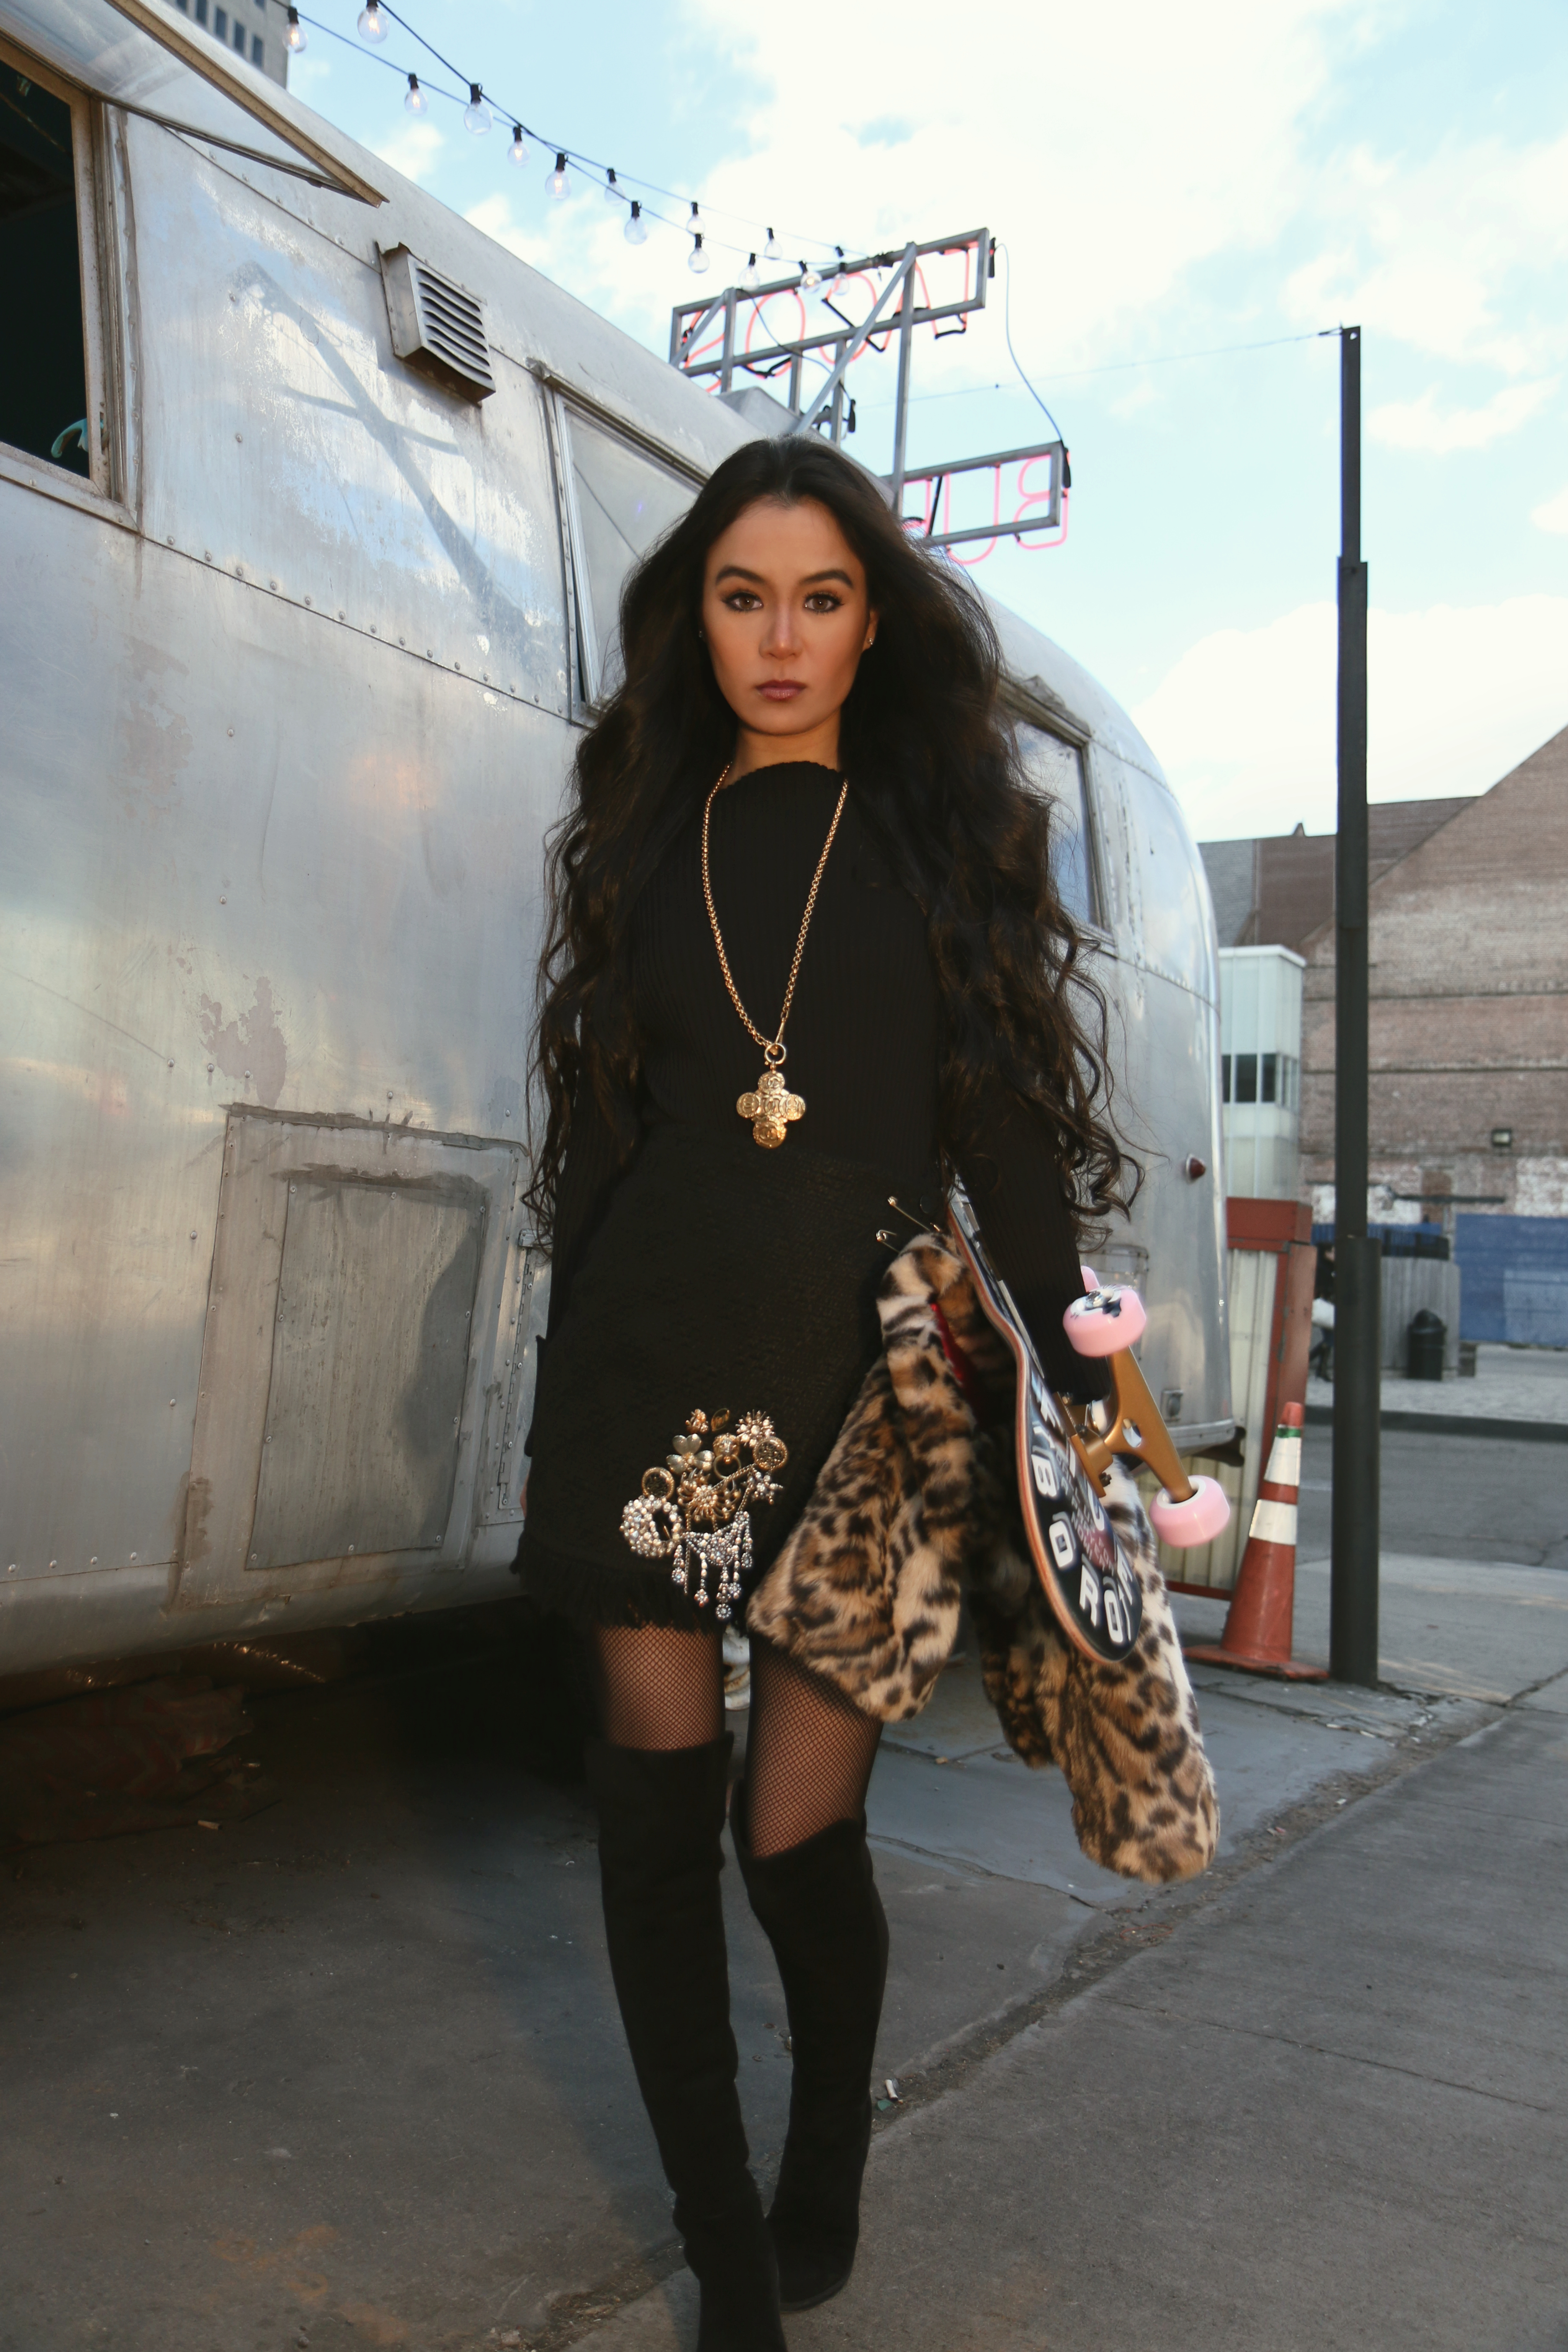 Annamaria Stewart, nyc fashion blogger at the shopping patch, wearing all black ribbed asymmetrical sweater with black boucle wrap skirt from zara, a vintage 90's gold chanel chain necklace, leopard print faux fur jacket, stuart weitzman 5050 suede boots, and the cinco barrios skateboard from 5boro, pictured by vintage airstream trailer at El Luchador